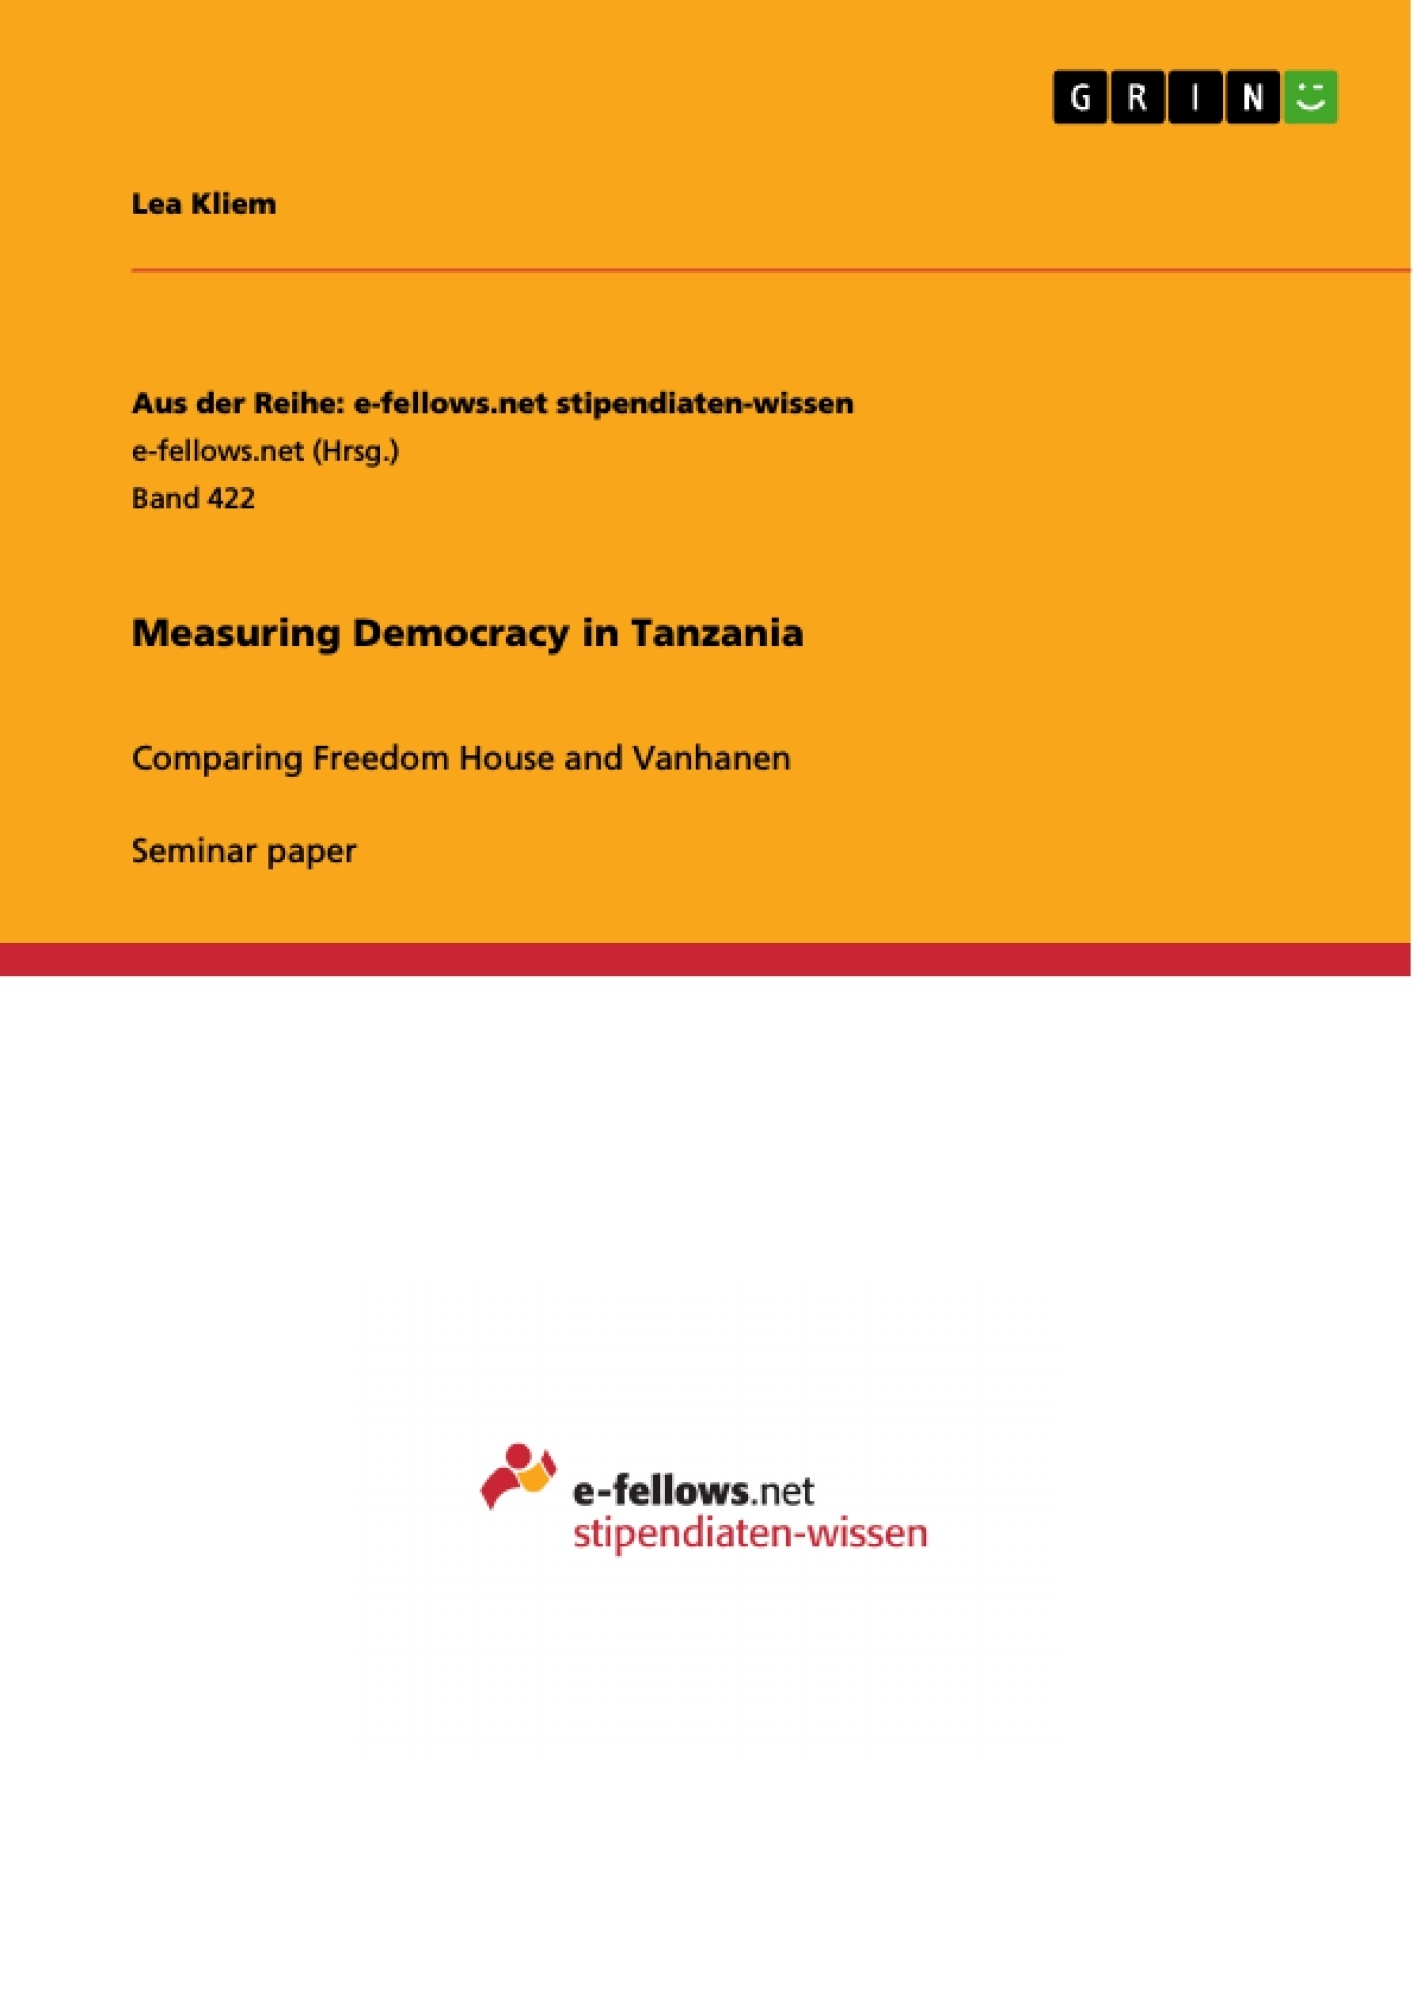 Title: Measuring Democracy in Tanzania